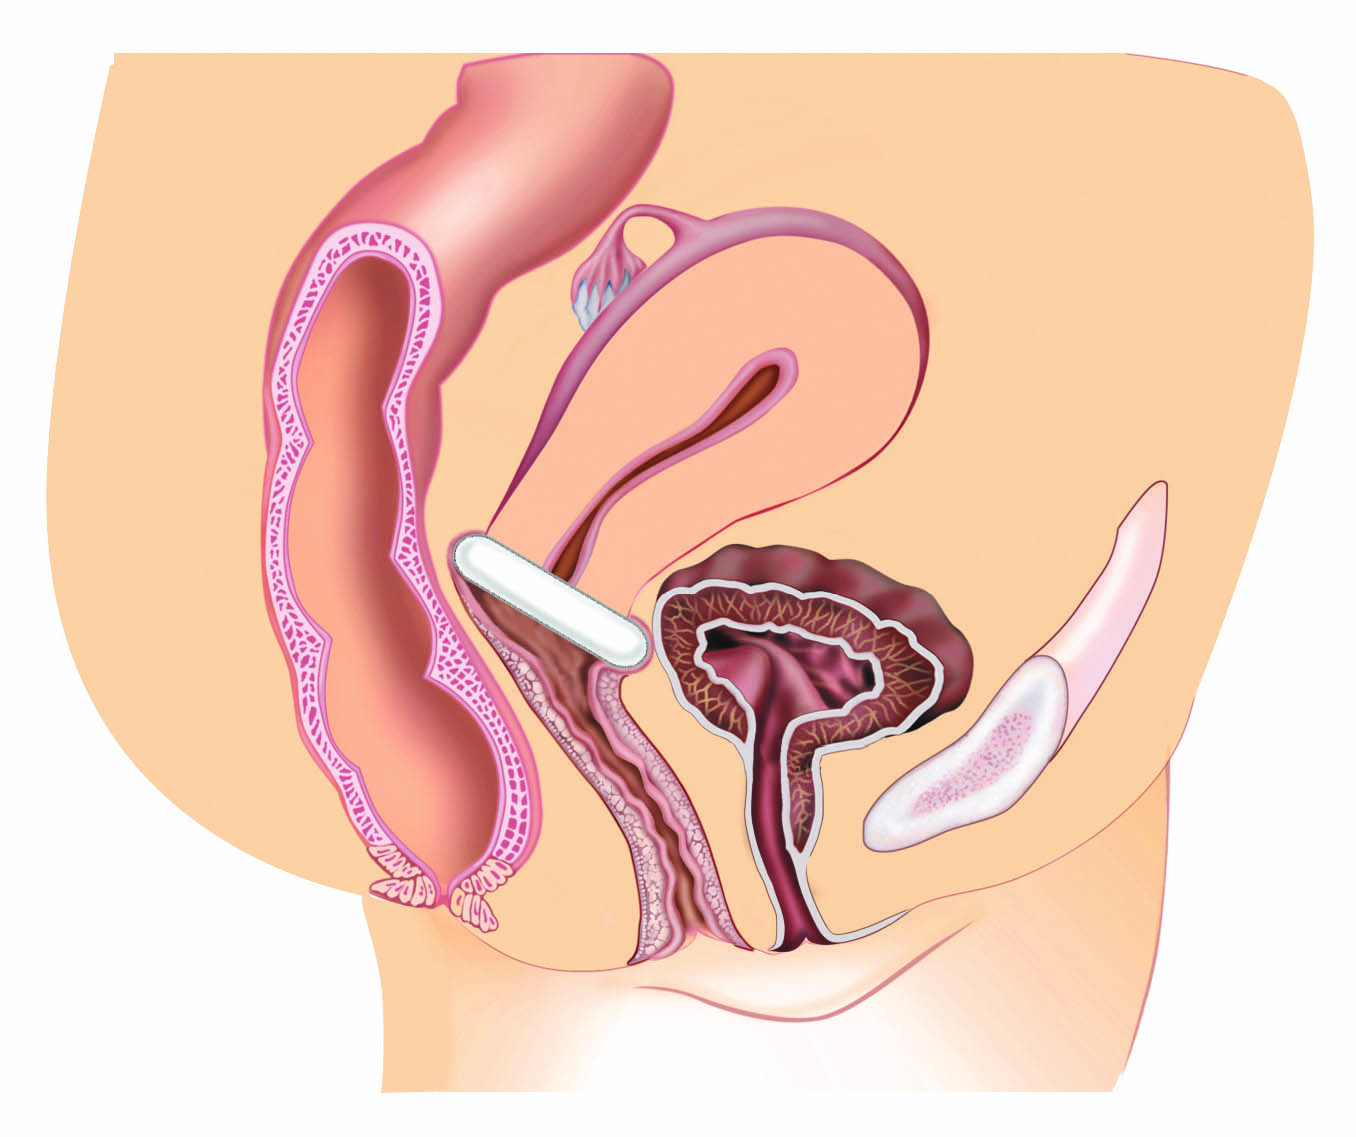 Current hormonal therapies for vulvovaginal